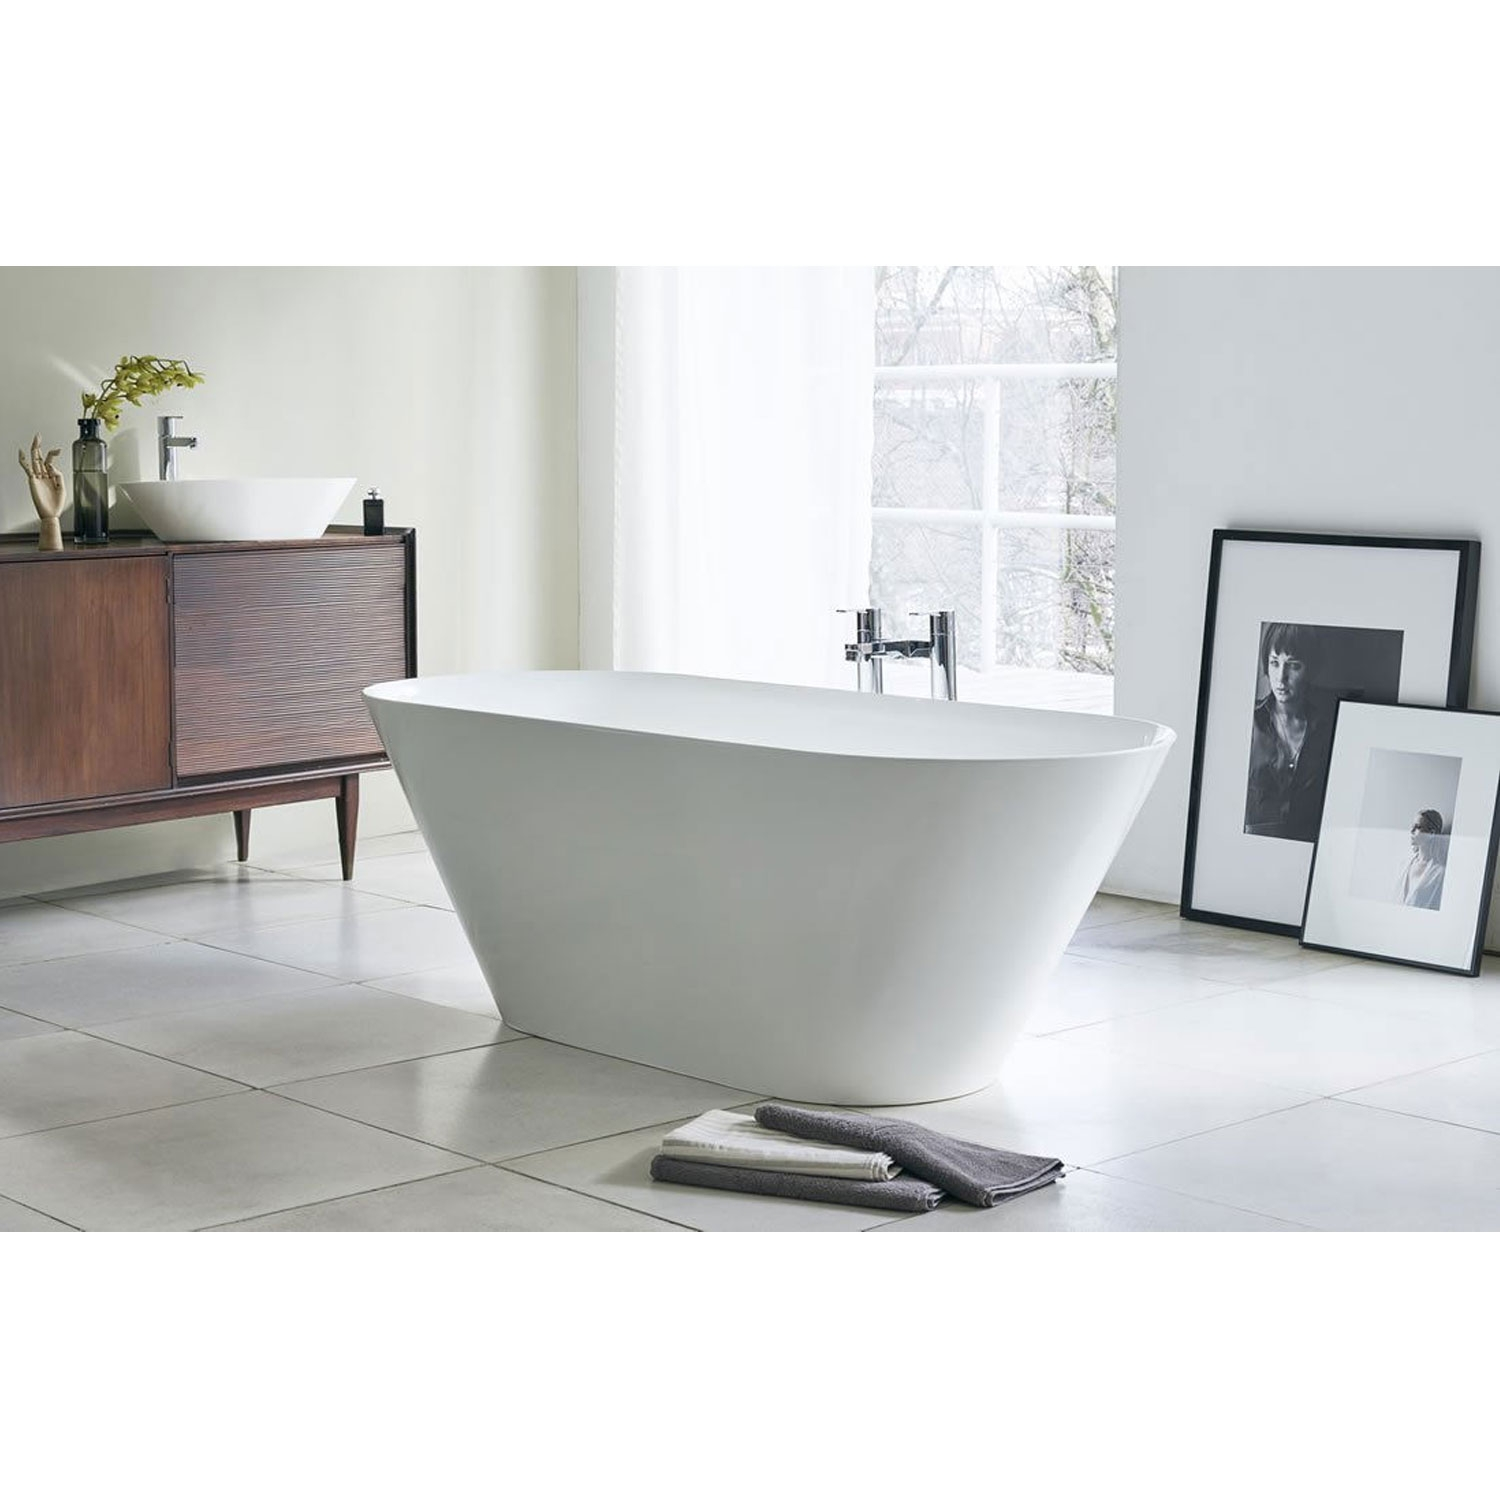 Clearwater Sontuoso Freestanding Bath 1690mm x 700mm - Clear Stone-0